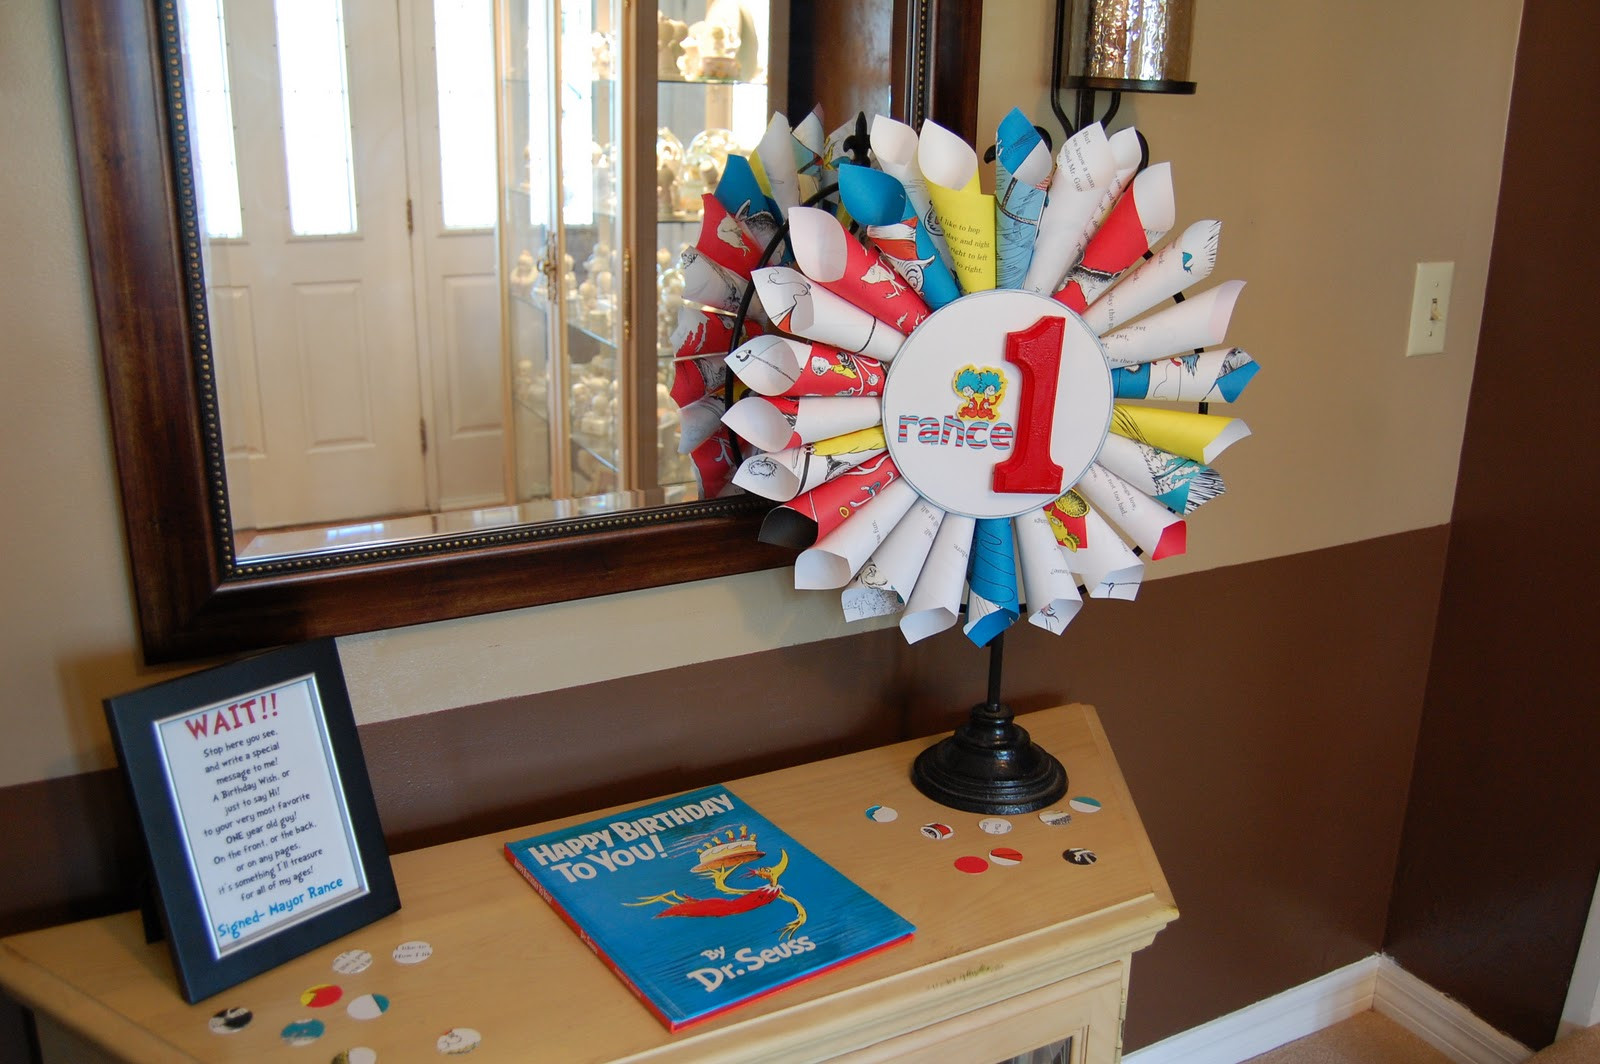 Best ideas about Dr.seuss Birthday Decorations . Save or Pin kristykes dr seuss birthday decorations Now.